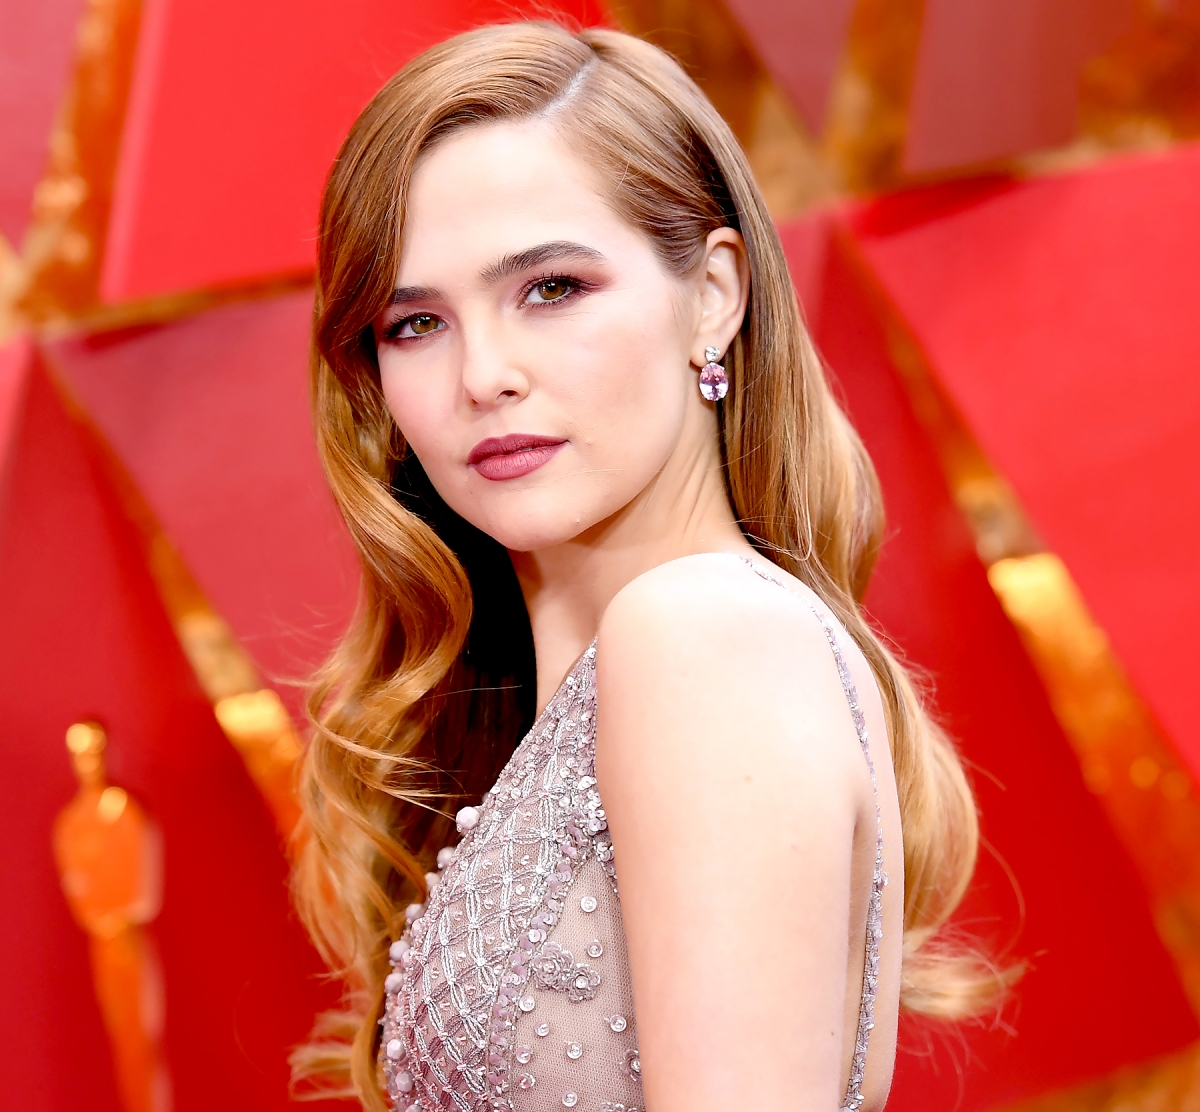 oscars 2018: best celebrity red carpet hair, makeup looks